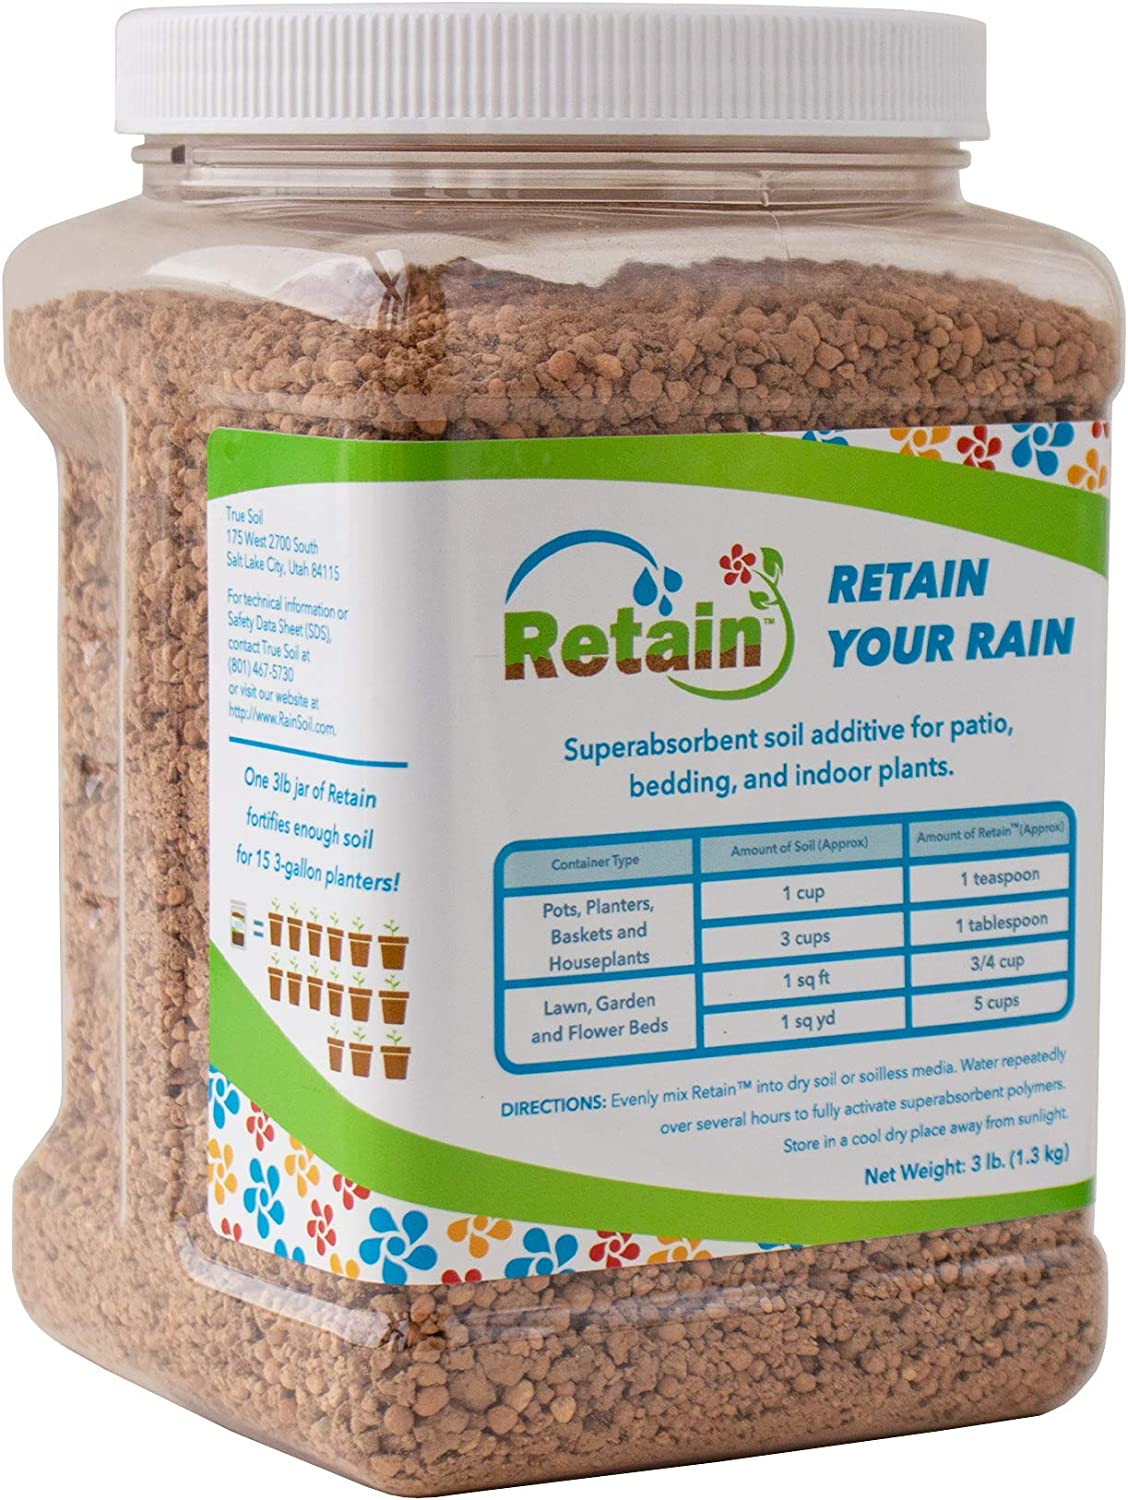 Retain by Rain Soil – 3 Lb – Water Holding Polymer Crystals Soil Additive – Stores Up to 15 Gallons of Water for House & Garden Plants, Lawn & Garden, Hanging Baskets